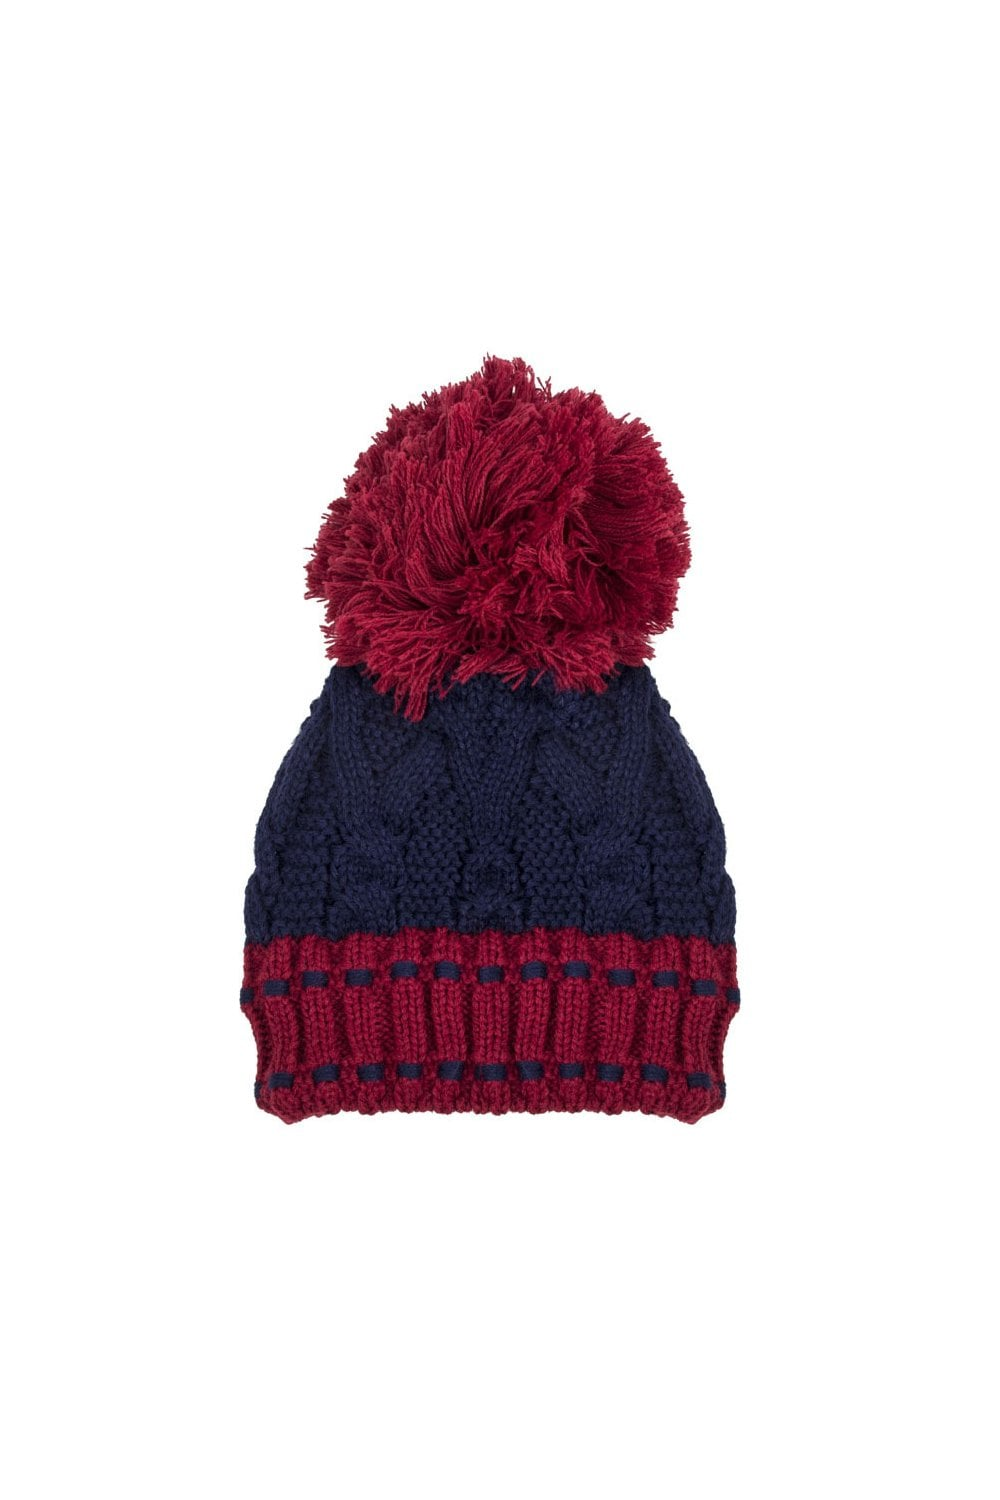 Dents Womens Chunky Cable Knit Hat - Berry Navy - Womenswear from ... f466ae2c1